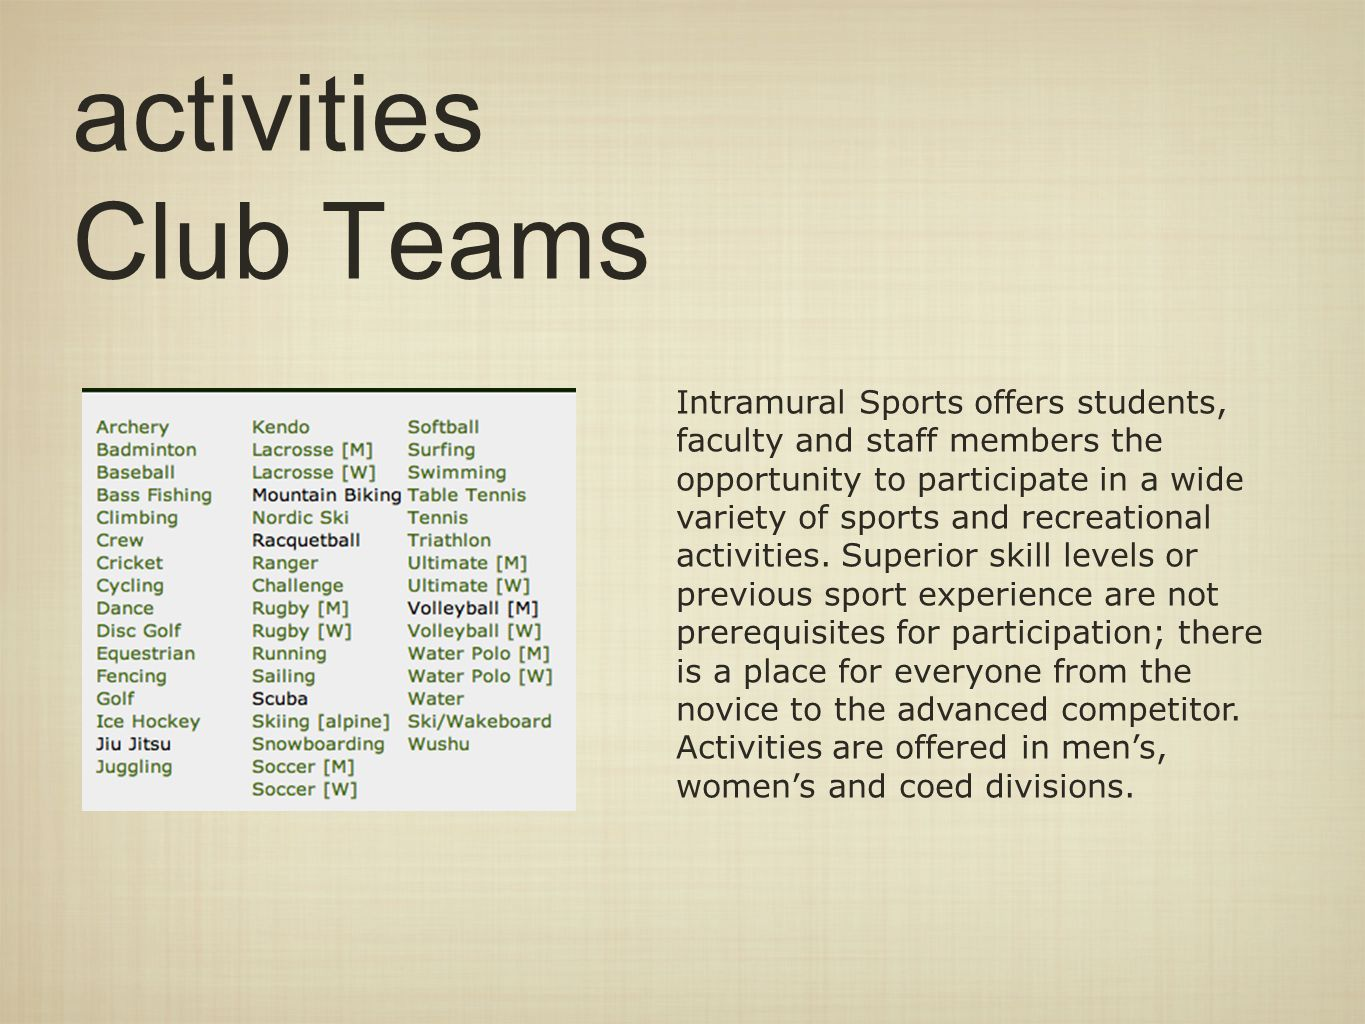 activities Club Teams Intramural Sports offers students, faculty and staff members the opportunity to participate in a wide variety of sports and recreational activities.